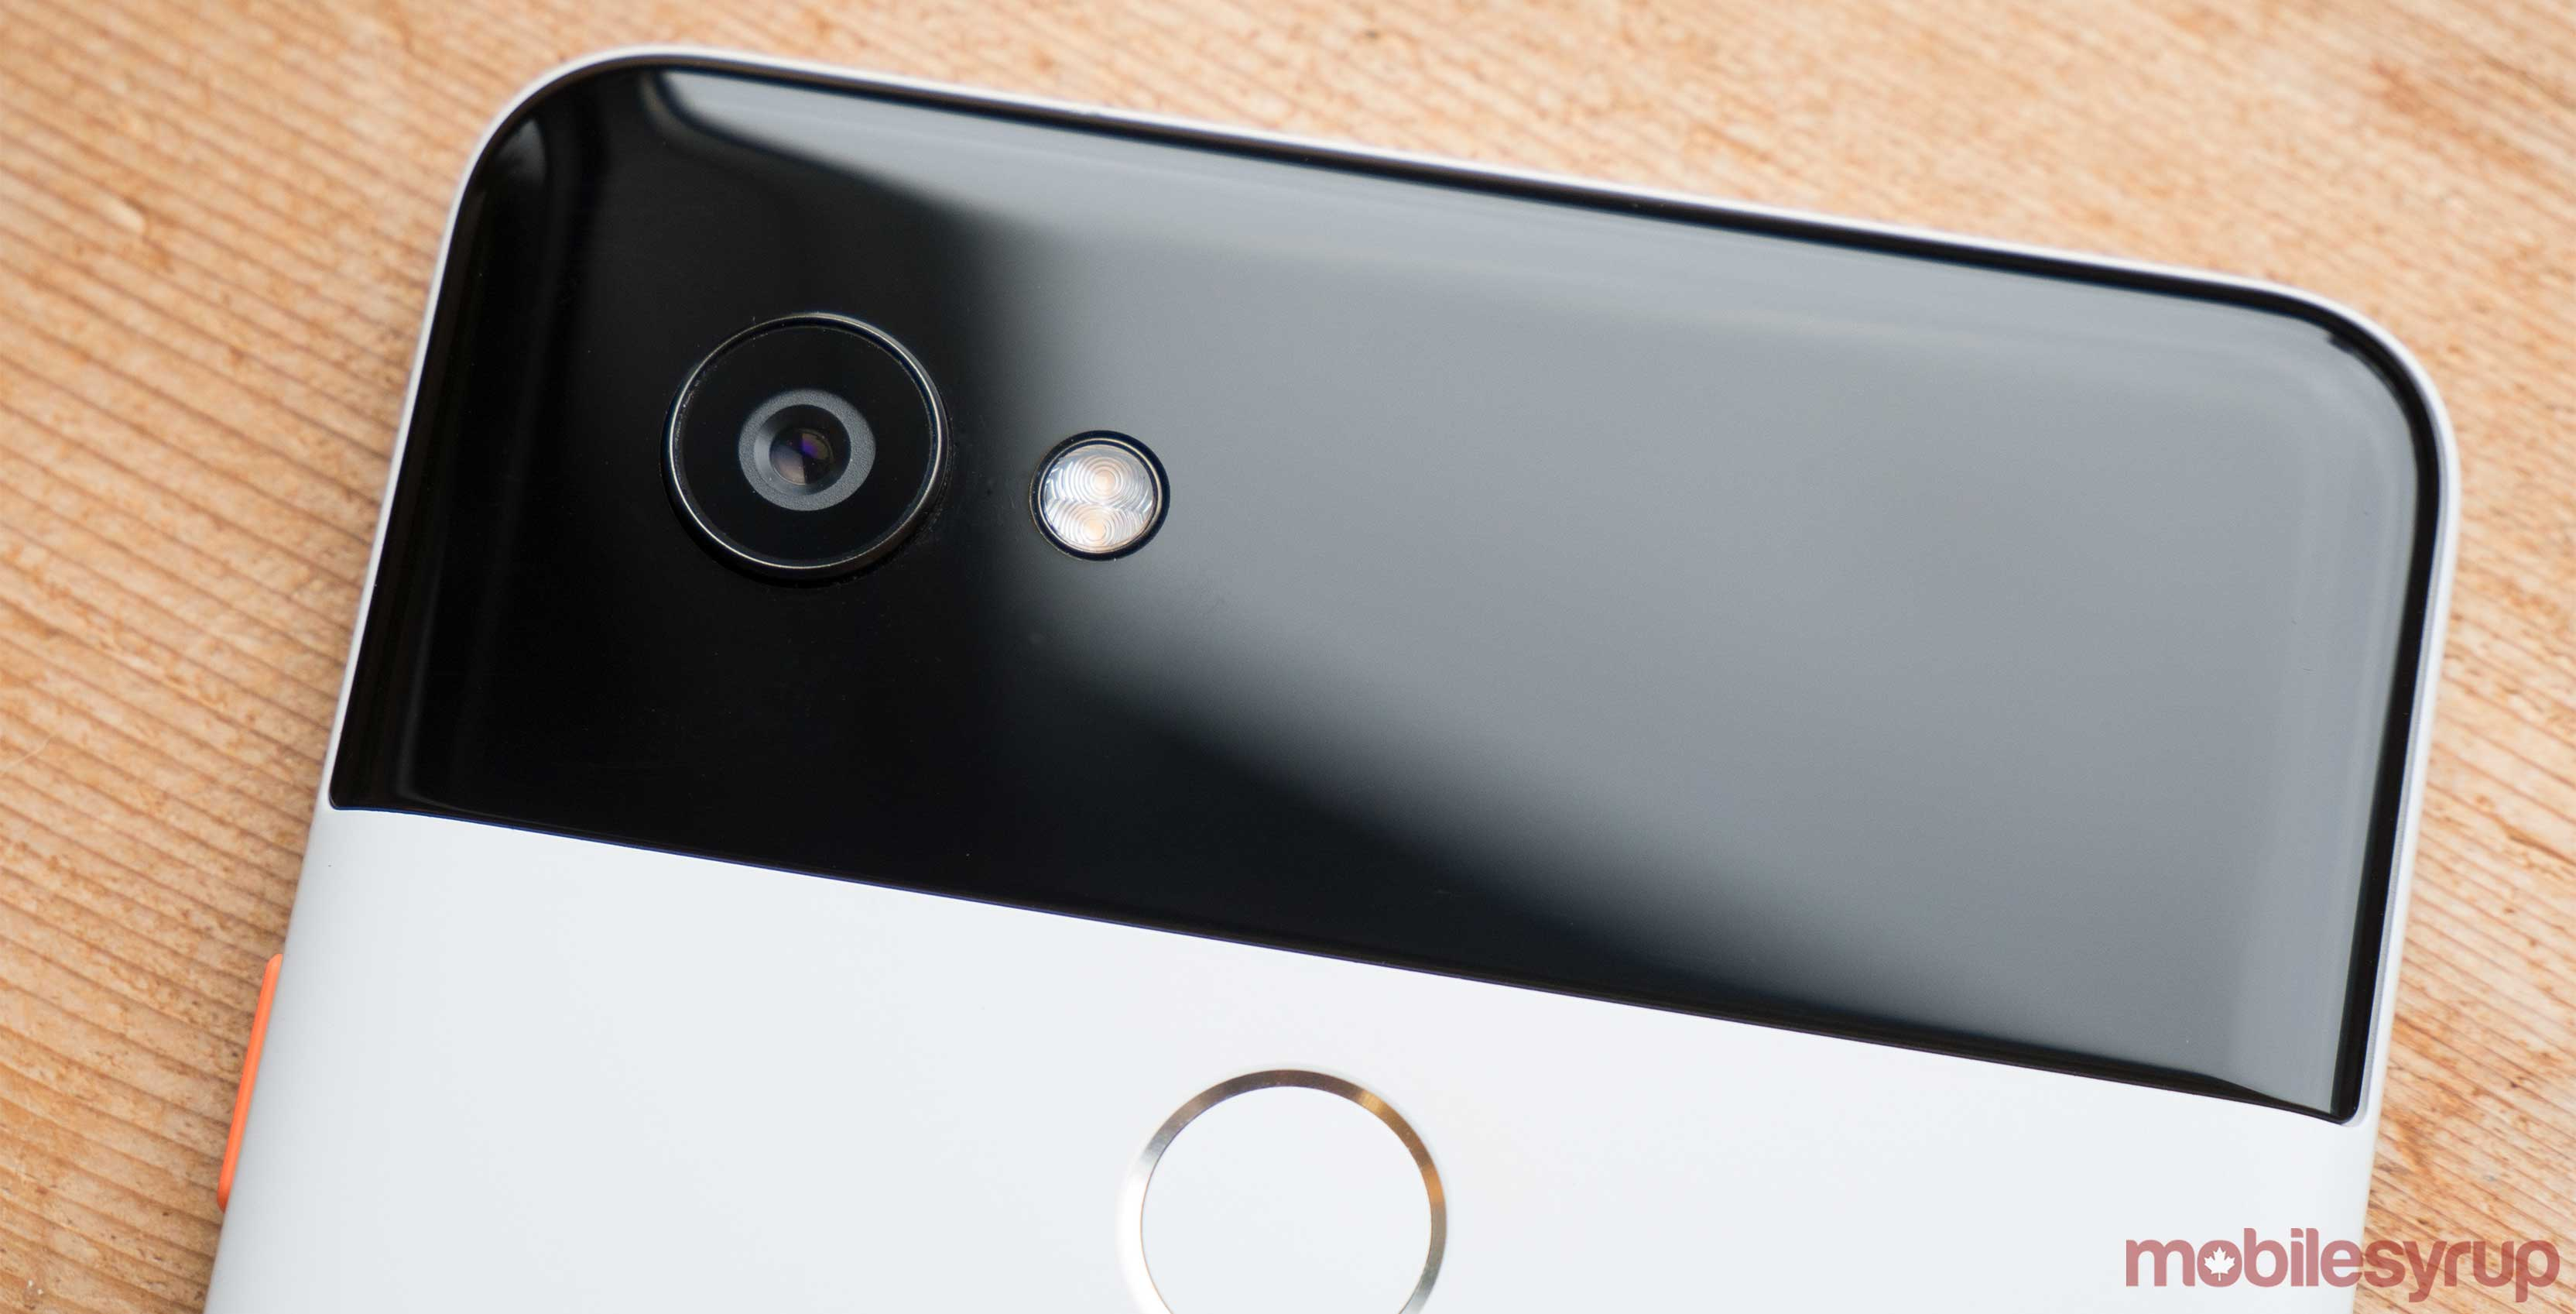 Google Lens is coming to Android devices with Google Photos